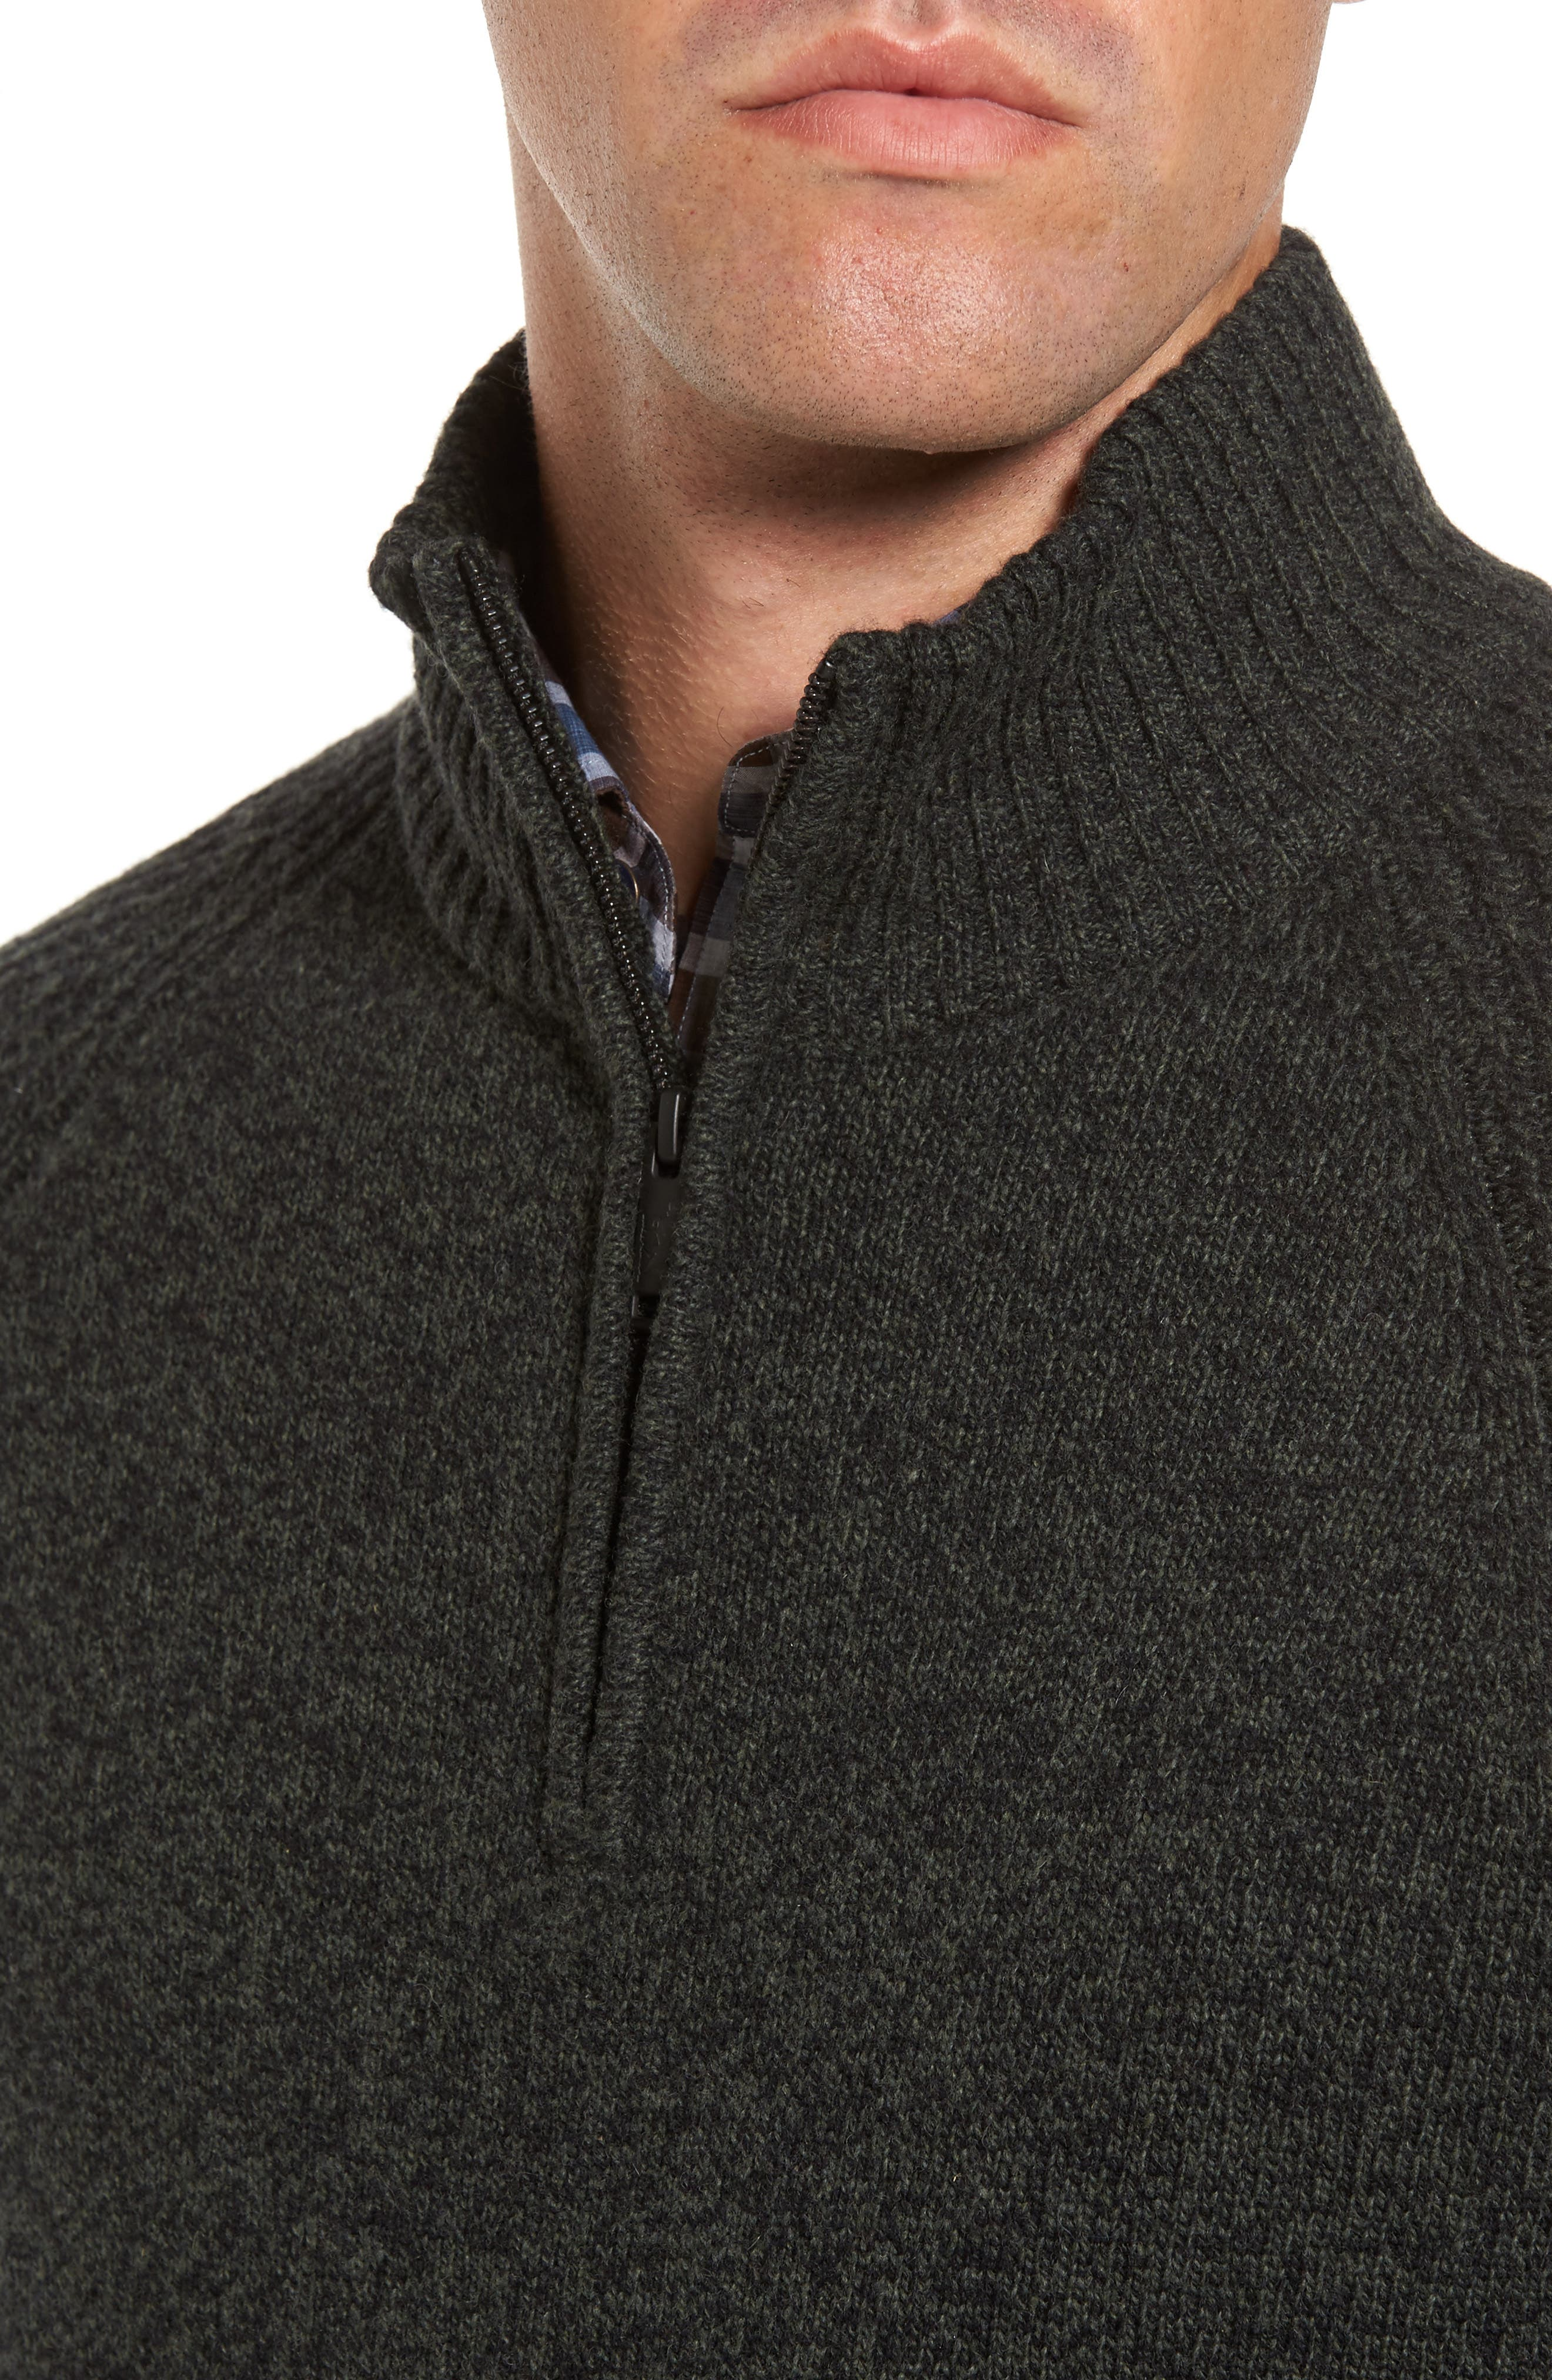 Stredwick Lambswool Sweater,                             Alternate thumbnail 4, color,                             Forest